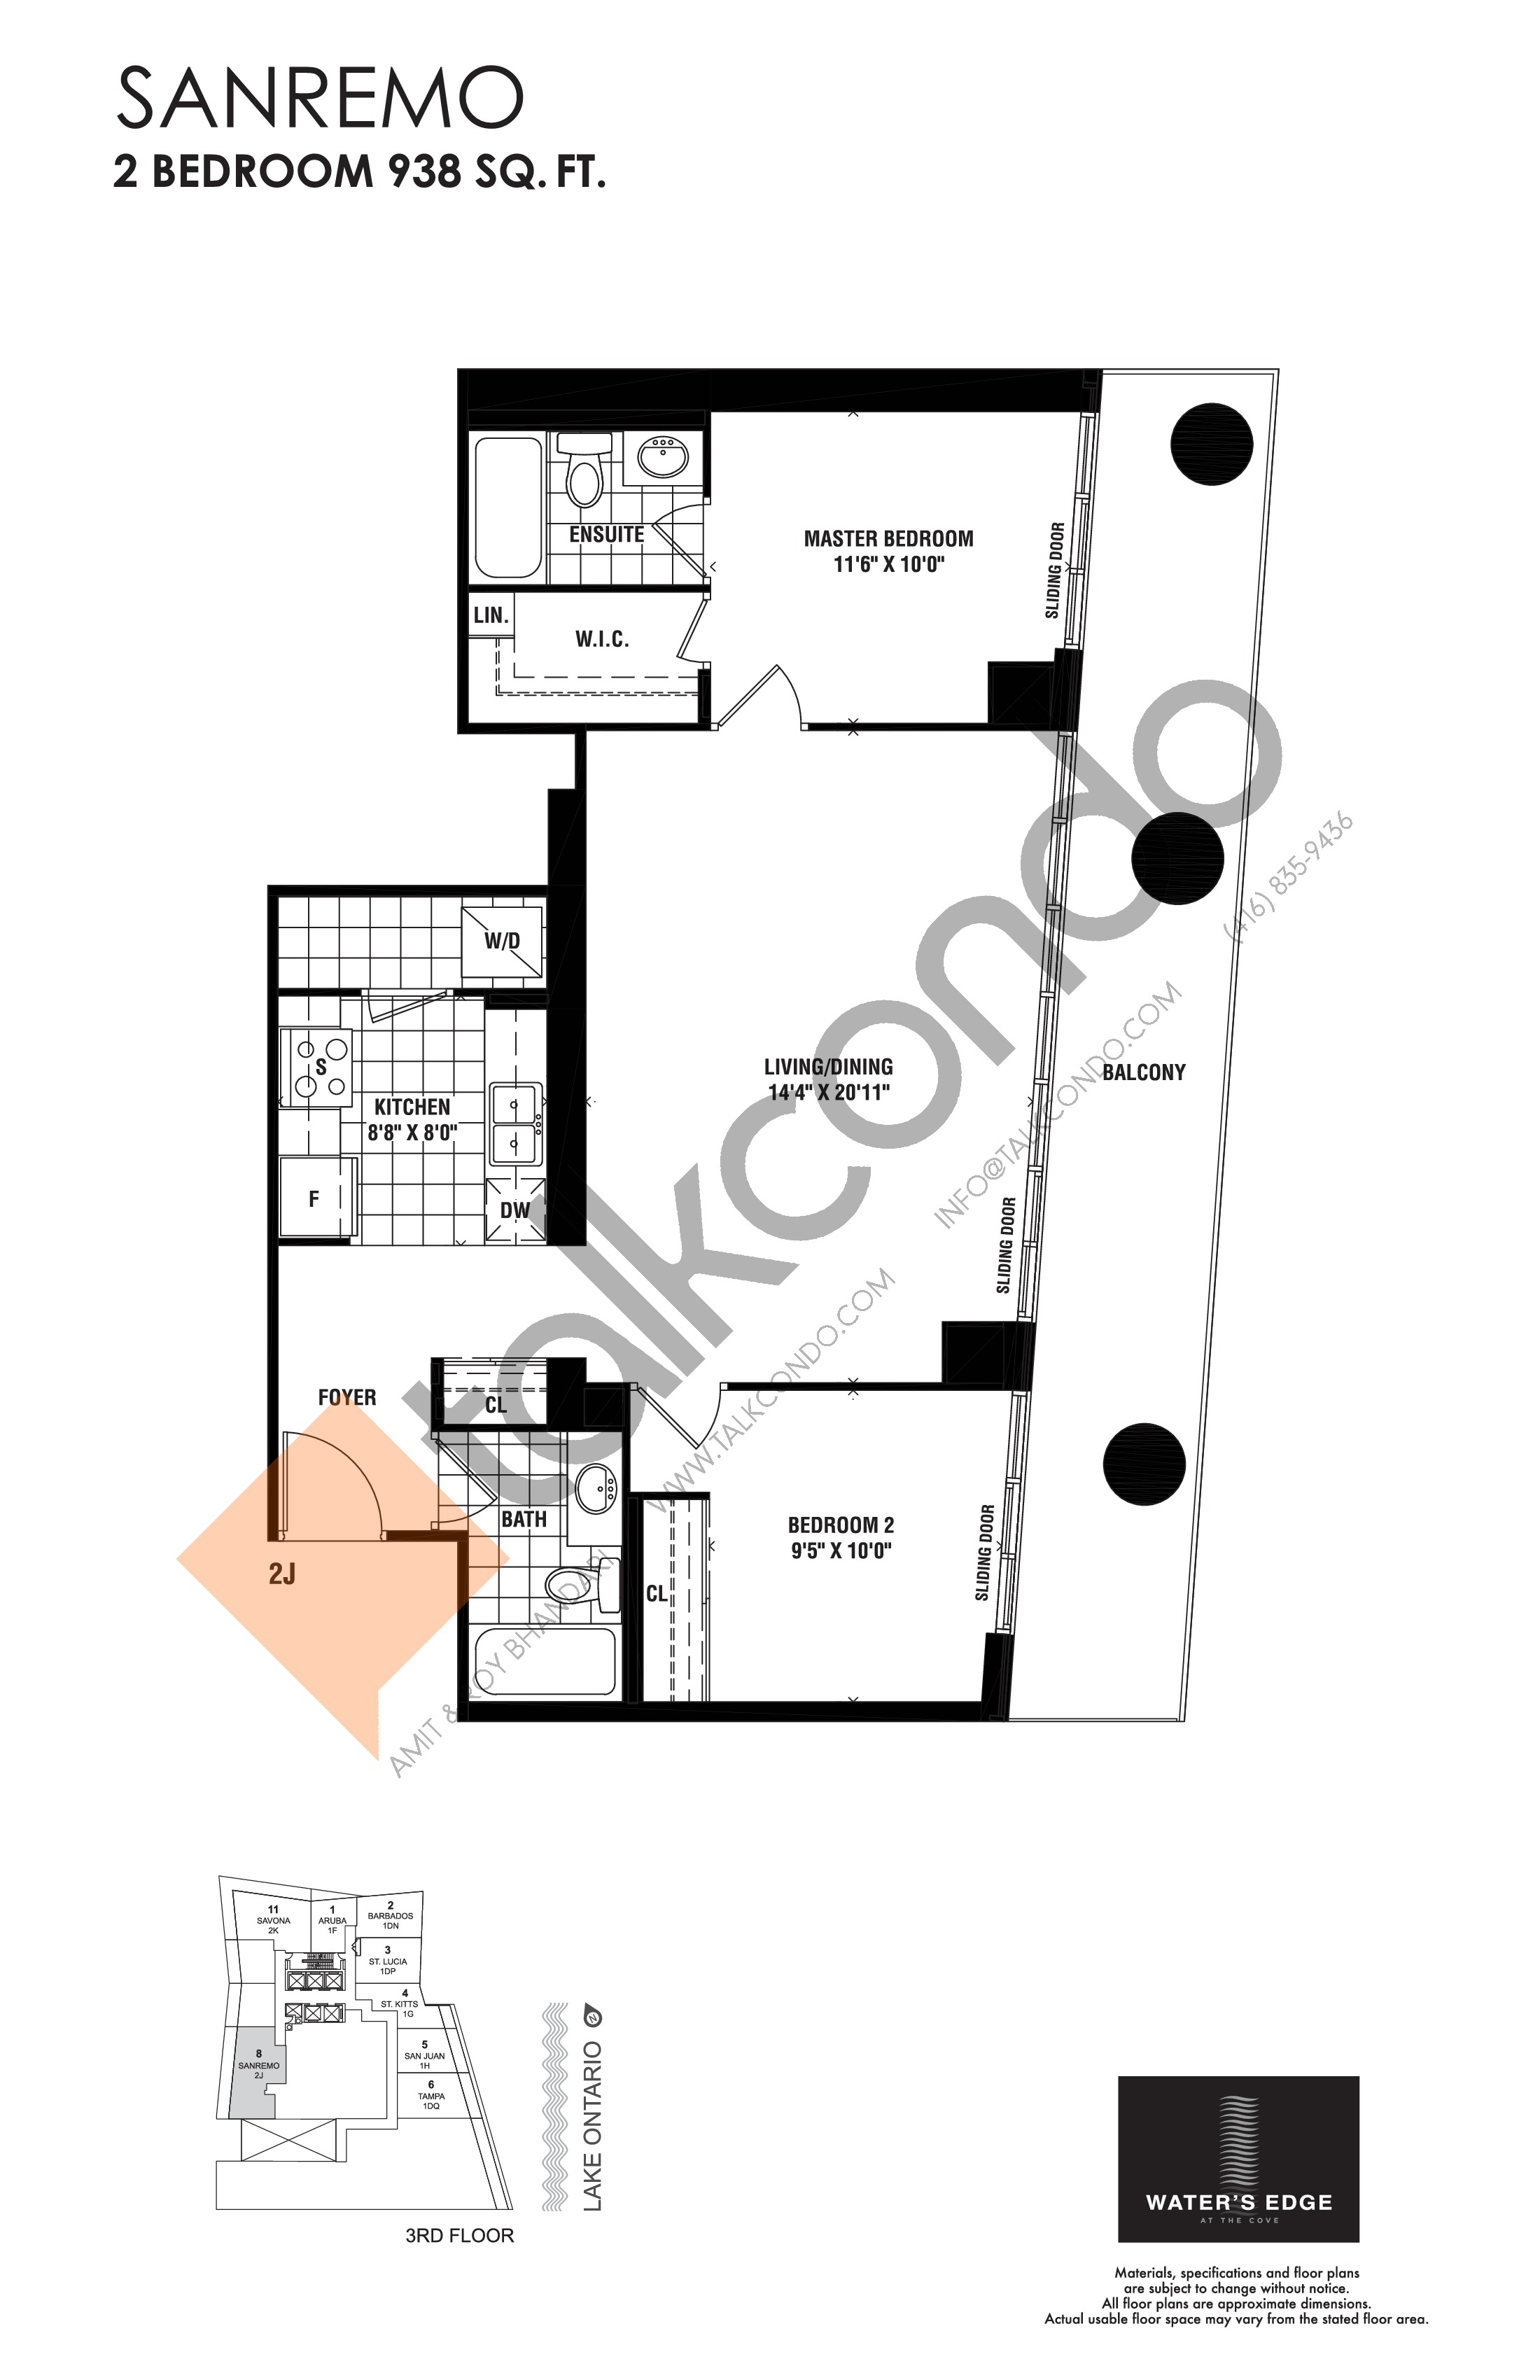 Sanremo Floor Plan at Water's Edge at the Cove Condos - 938 sq.ft